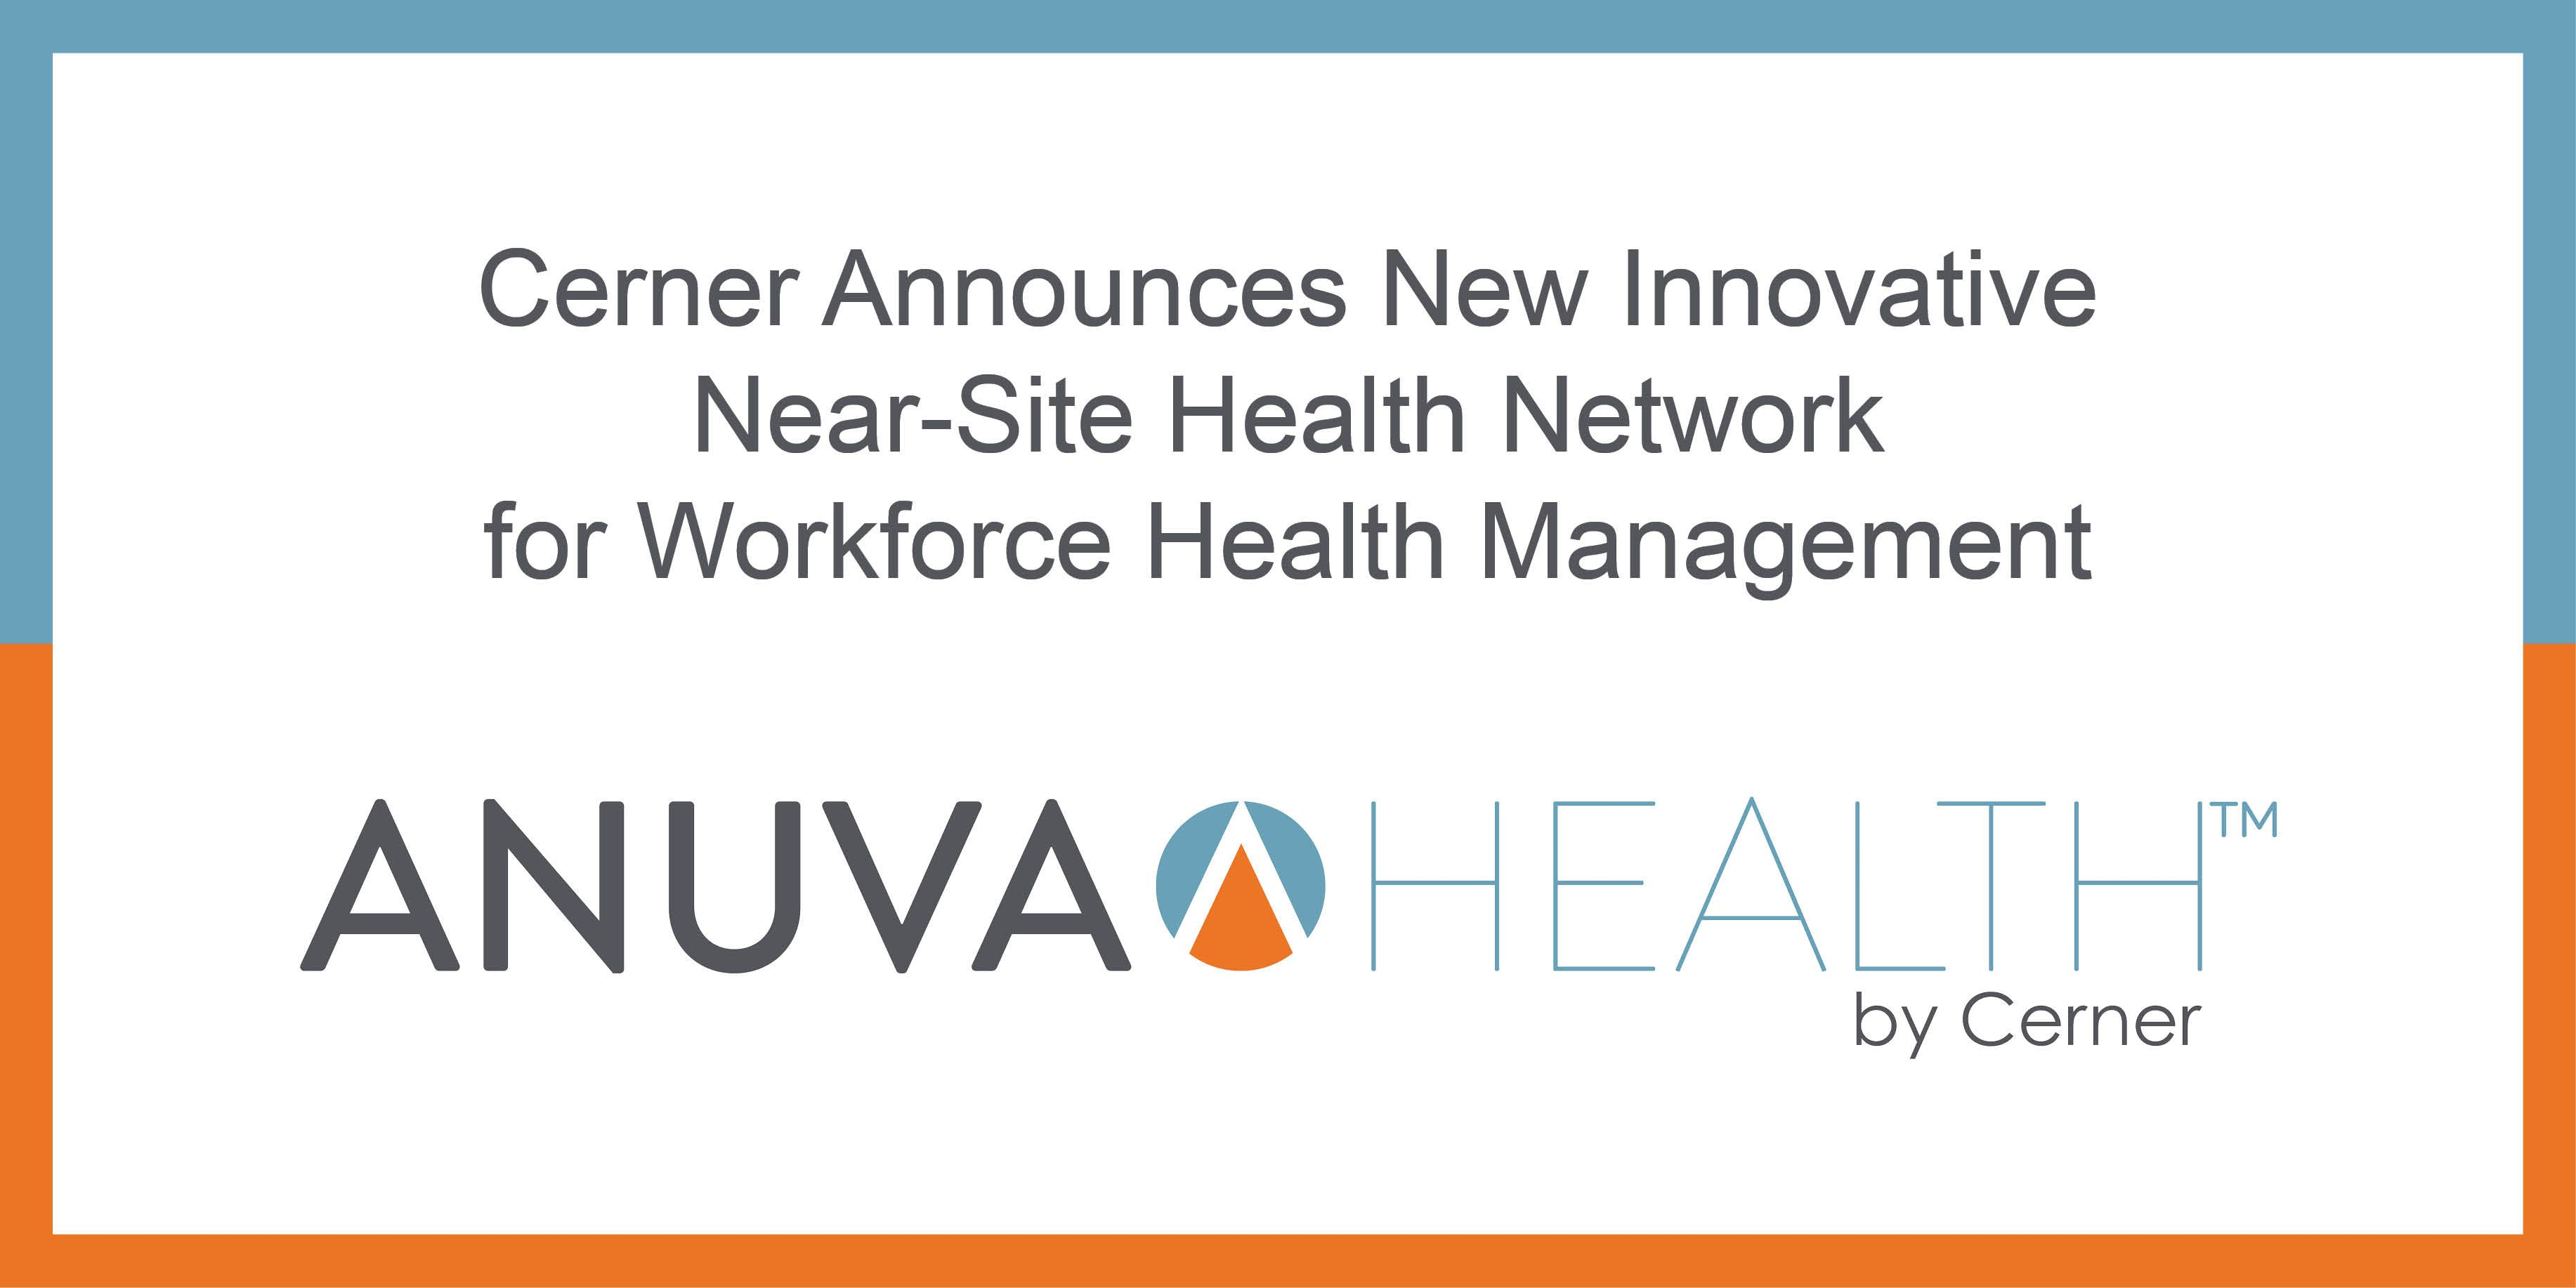 Cerner Launches NearSite Health Network for Workforce